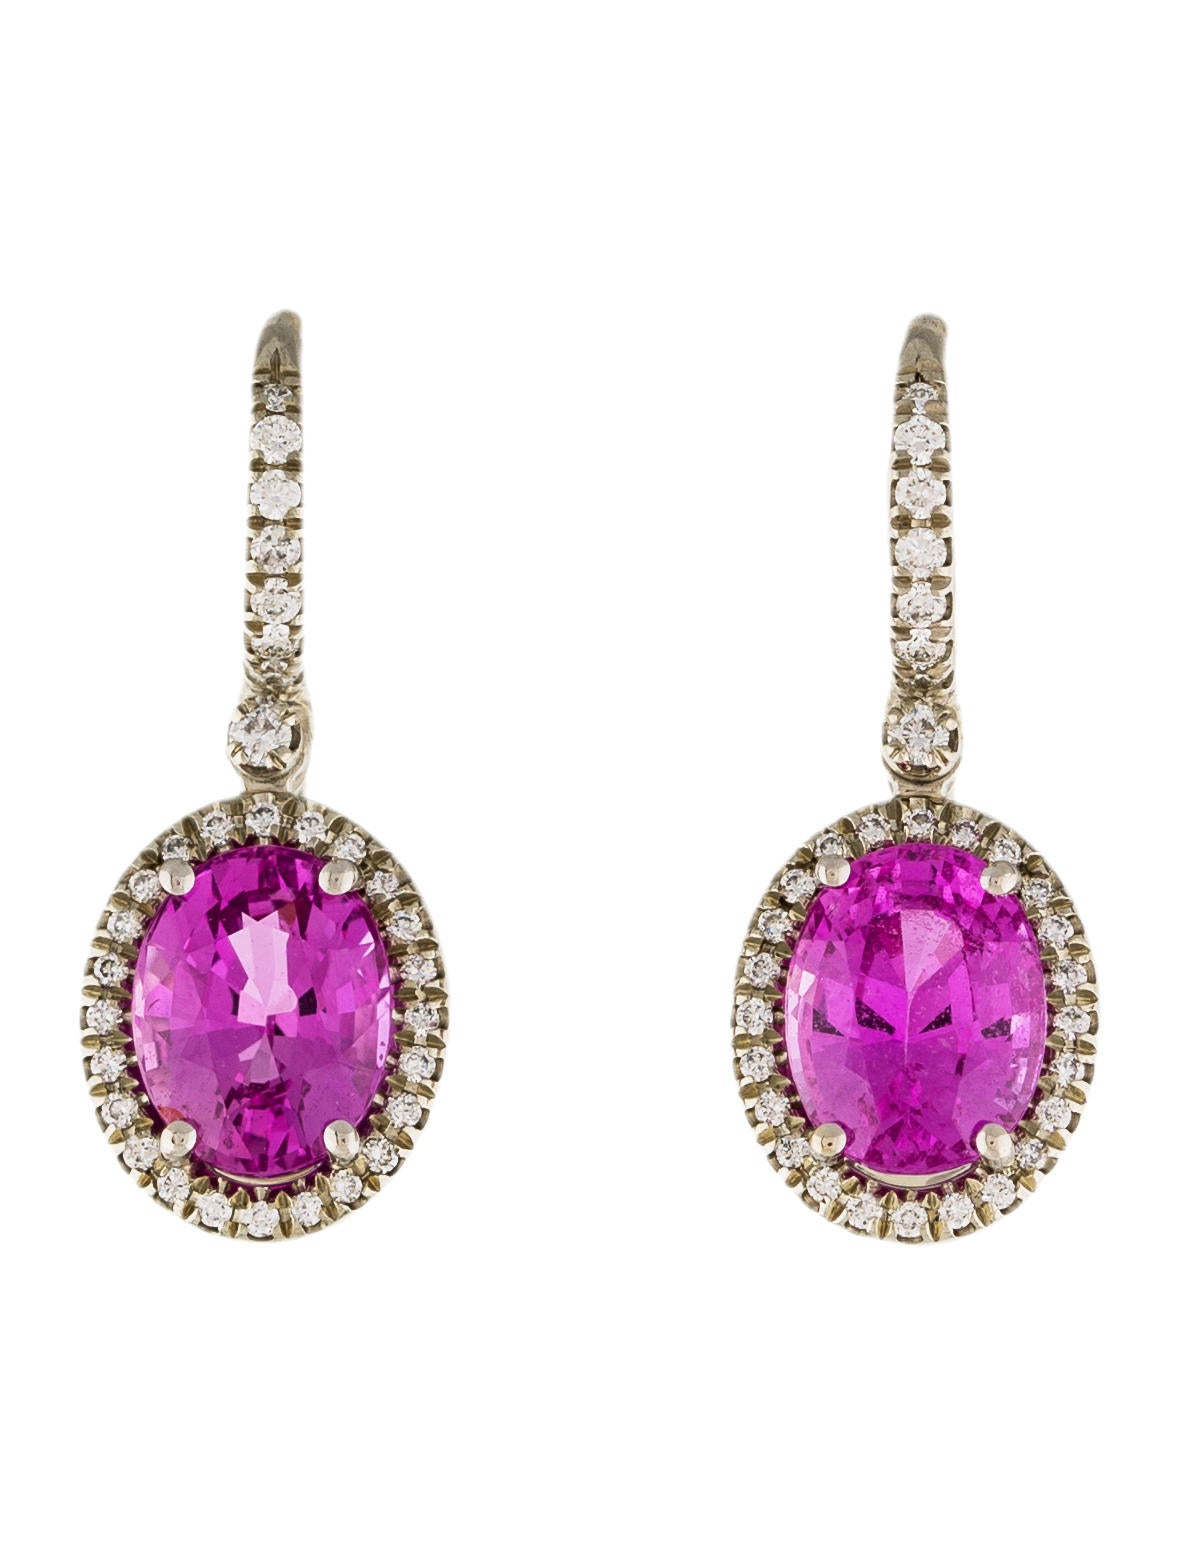 mark patterson 18k diamond amp pink sapphire drop earrings